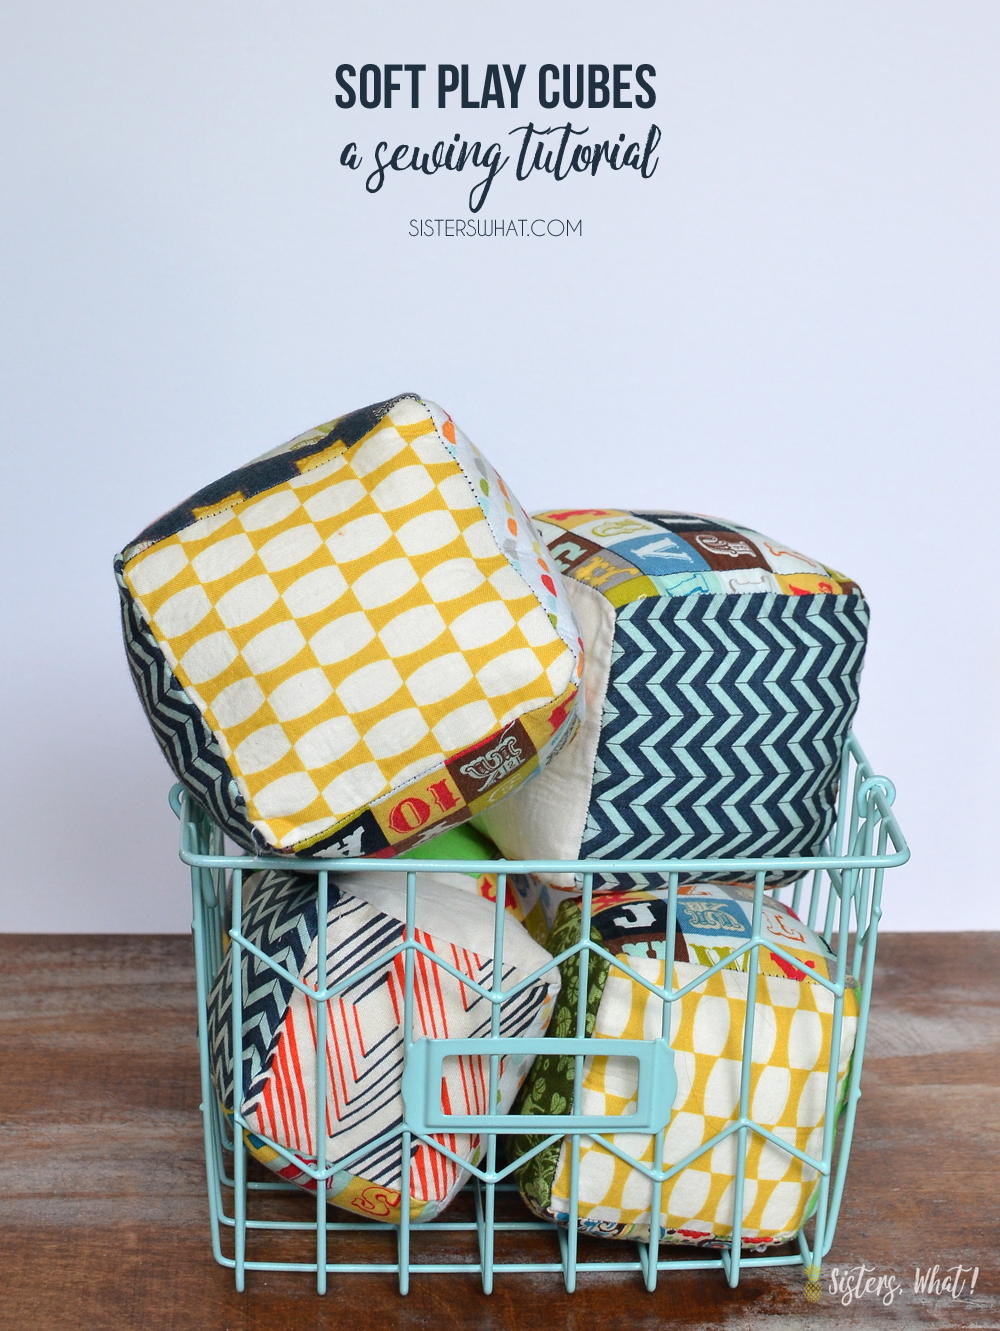 Soft play cubes sewing tutorial to make for kids of all ages!